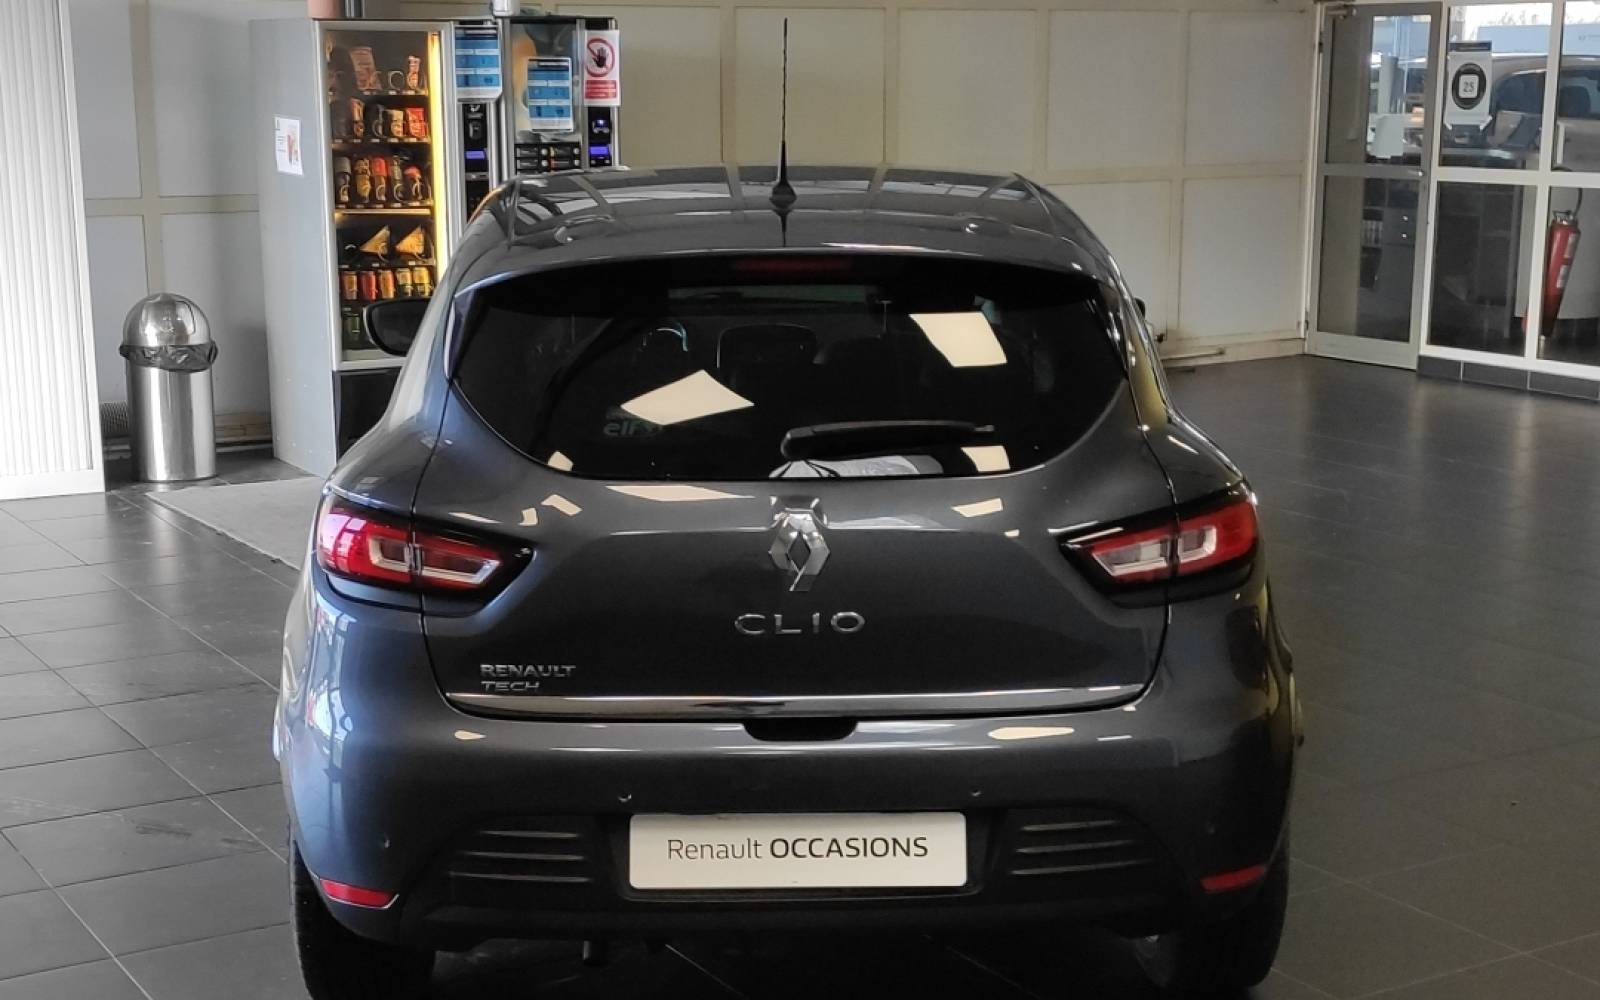 RENAULT Clio TCe 90 Energy - véhicule d'occasion - Site Internet Faurie - Sarda - 24750 - Trelissac - 6